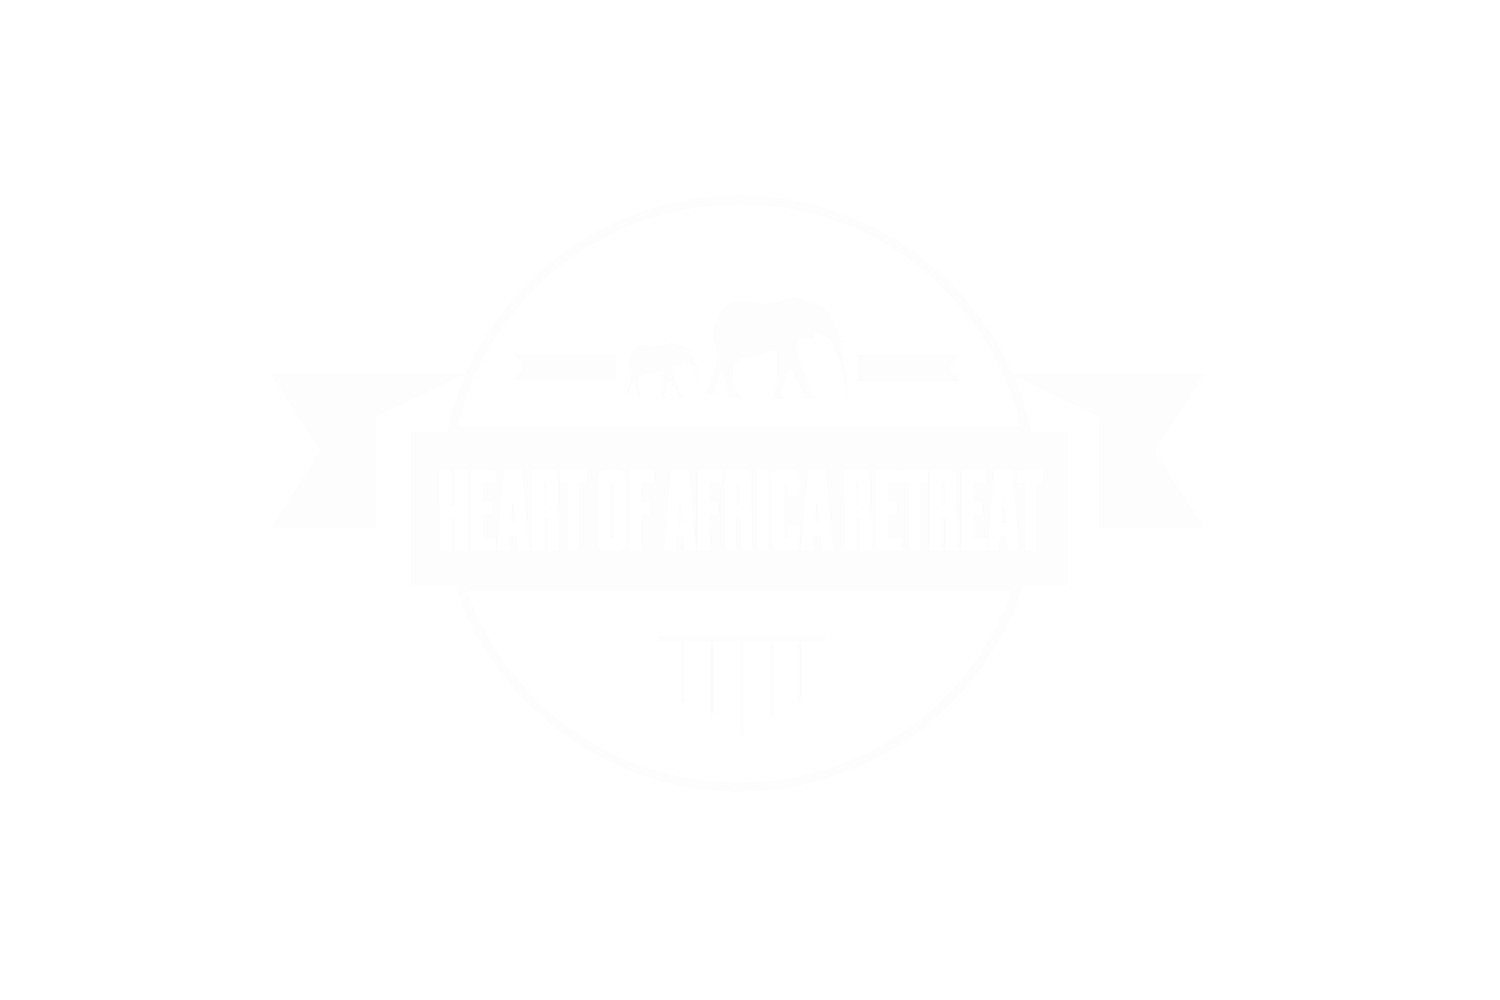 Heart of Africa Retreat